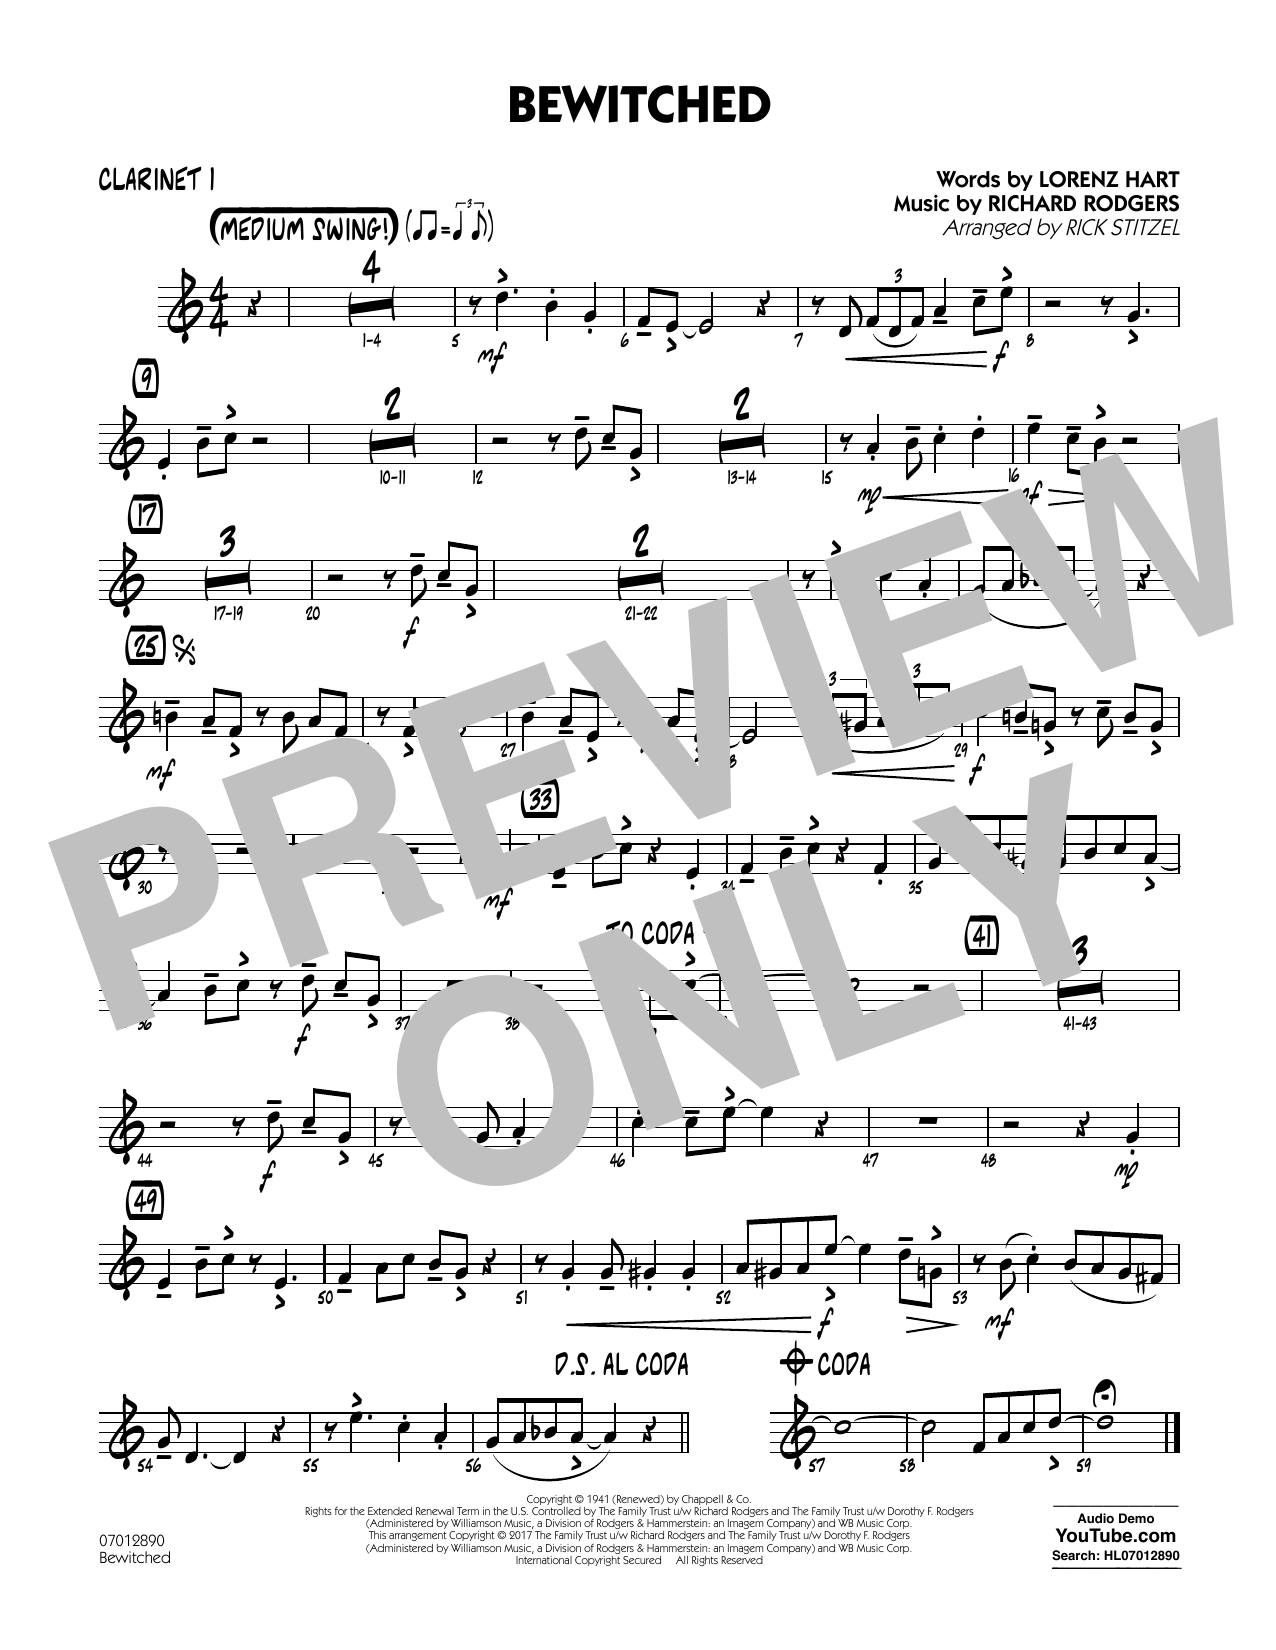 Bewitched - Clarinet 1 Sheet Music